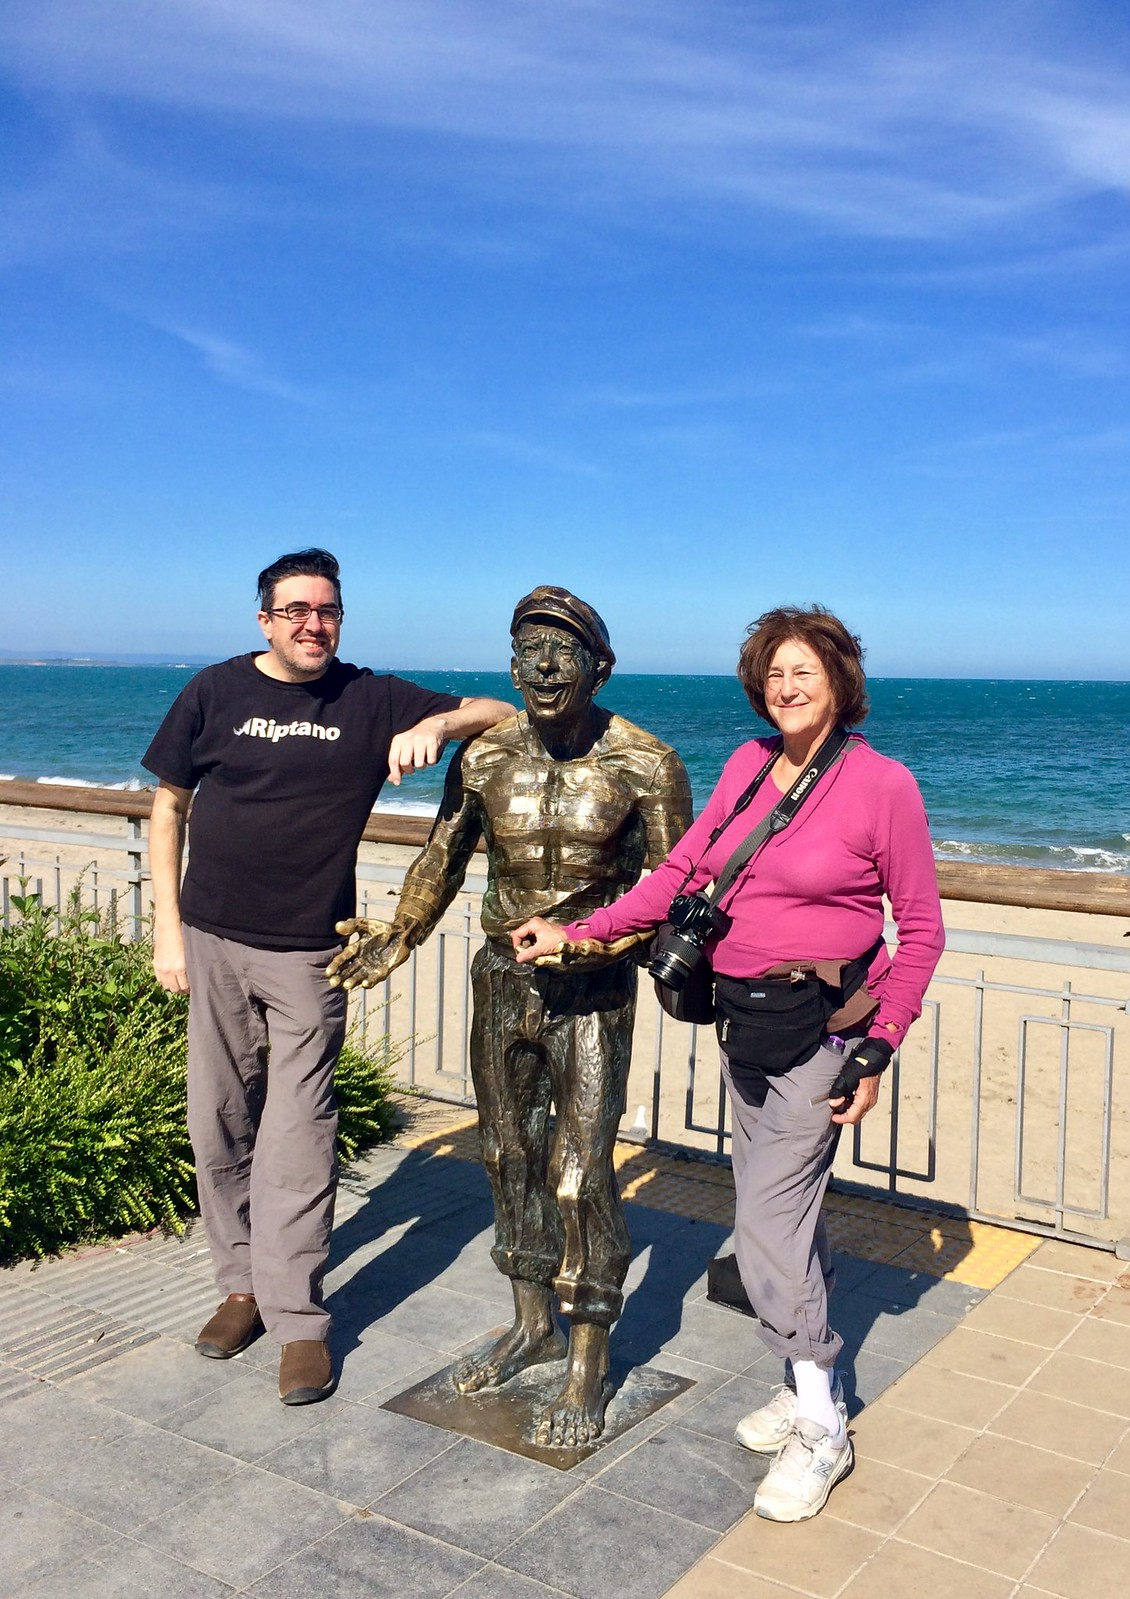 201705 - Balkans - Me, Mom, Sailor Statue - 22 of 95 - Ancient City of Nessebar - Burgas, May 24, 2017